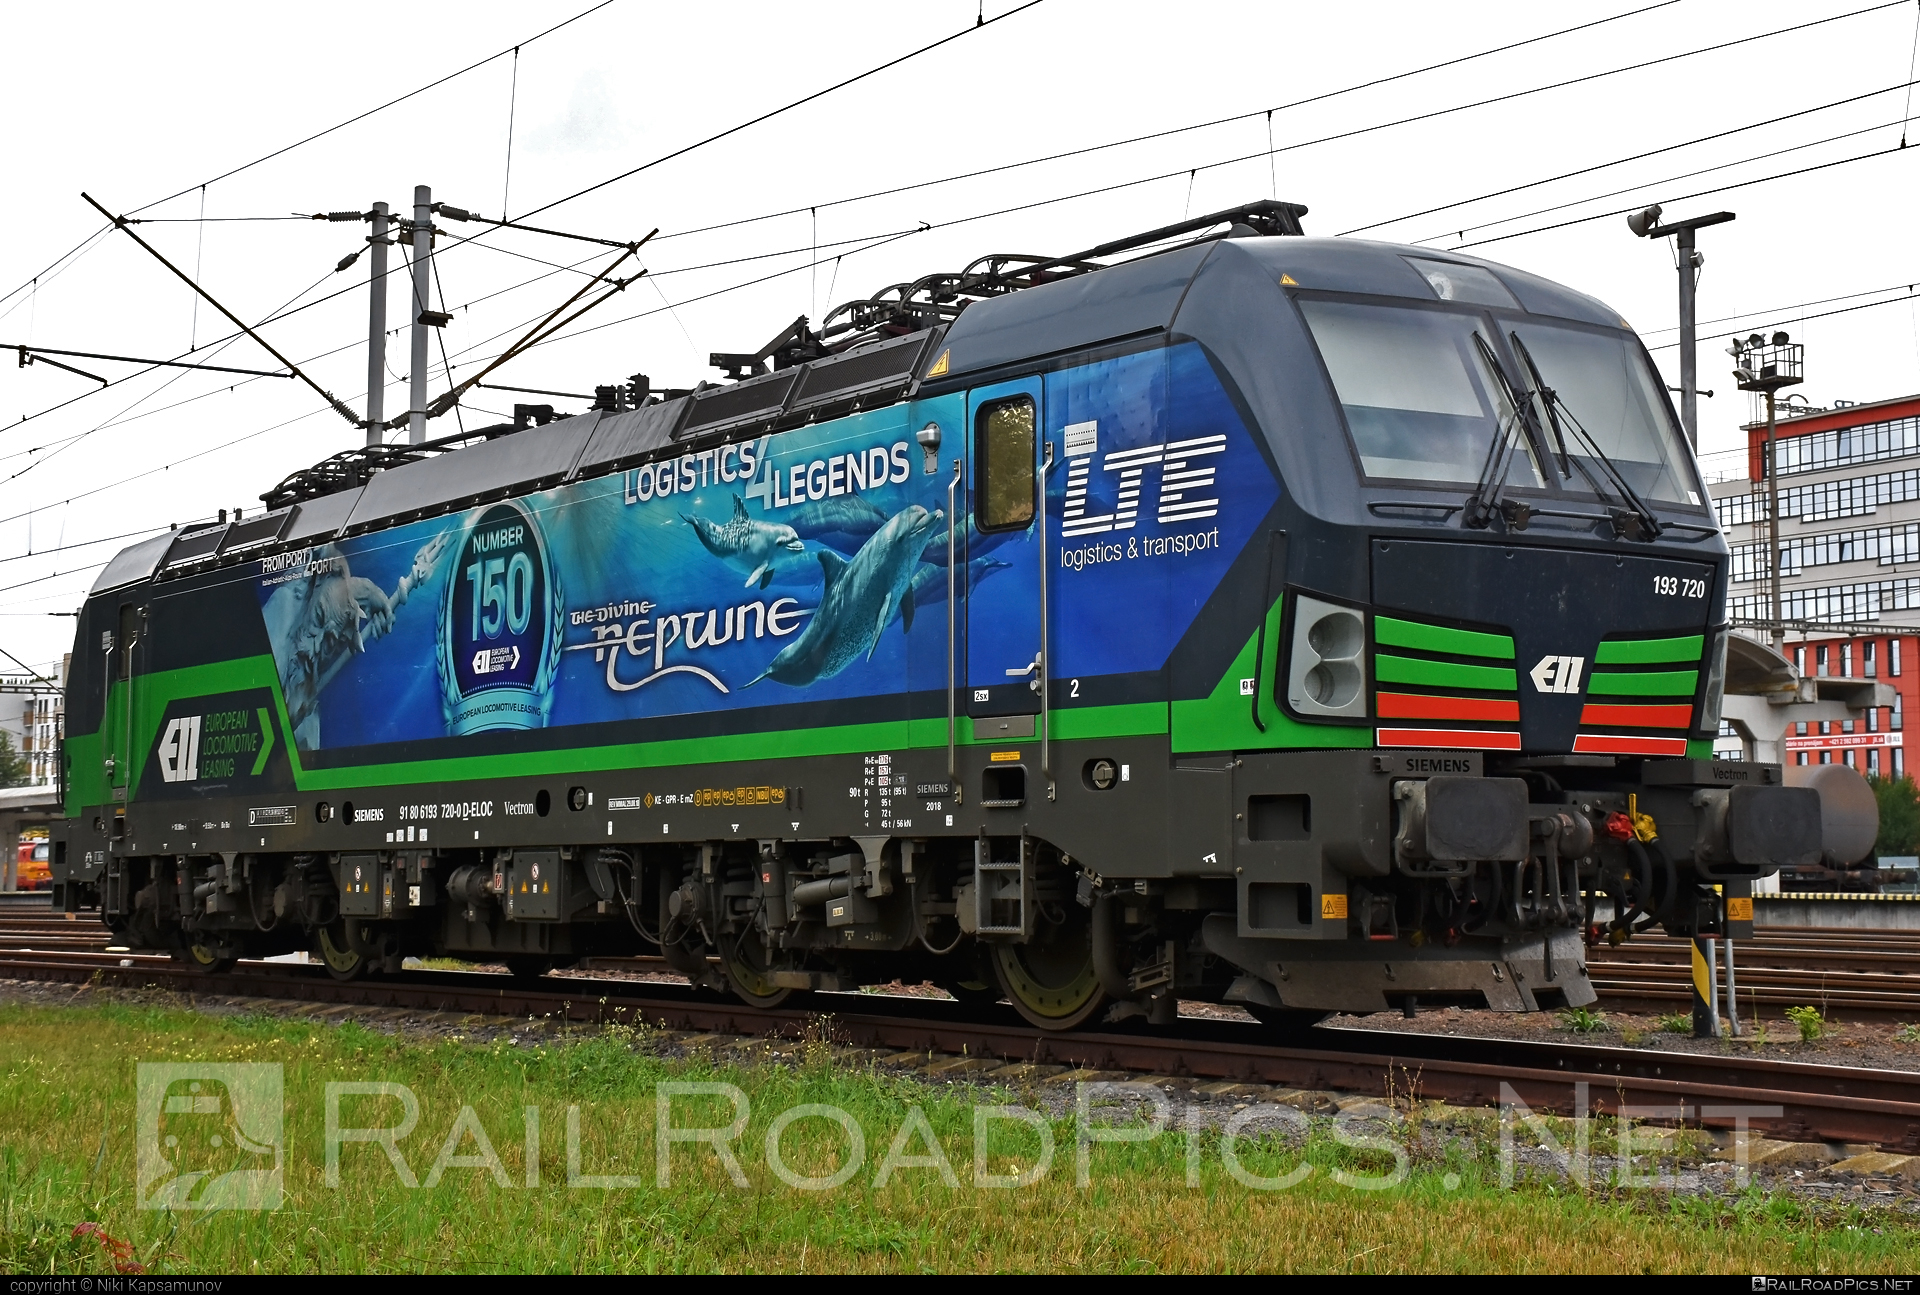 Siemens Vectron MS - 193 720 operated by LTE Logistik und Transport GmbH #ell #ellgermany #eloc #europeanlocomotiveleasing #lte #ltelogistikundtransport #ltelogistikundtransportgmbh #siemens #siemensvectron #siemensvectronms #vectron #vectronms